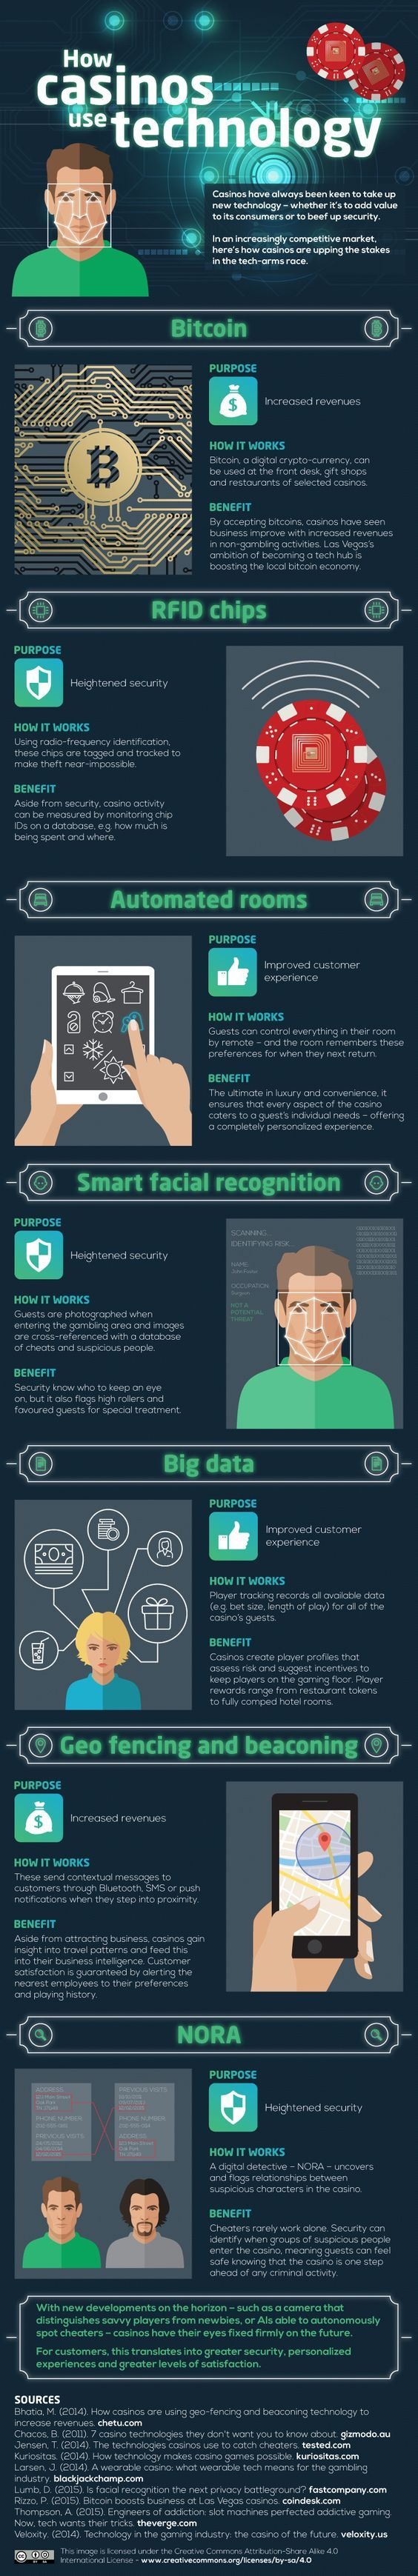 How Casinos Use Technology - Casinos are experts at using technology to monitor and profile their players and this infographic will tell you exactly how they do it. - #infographic